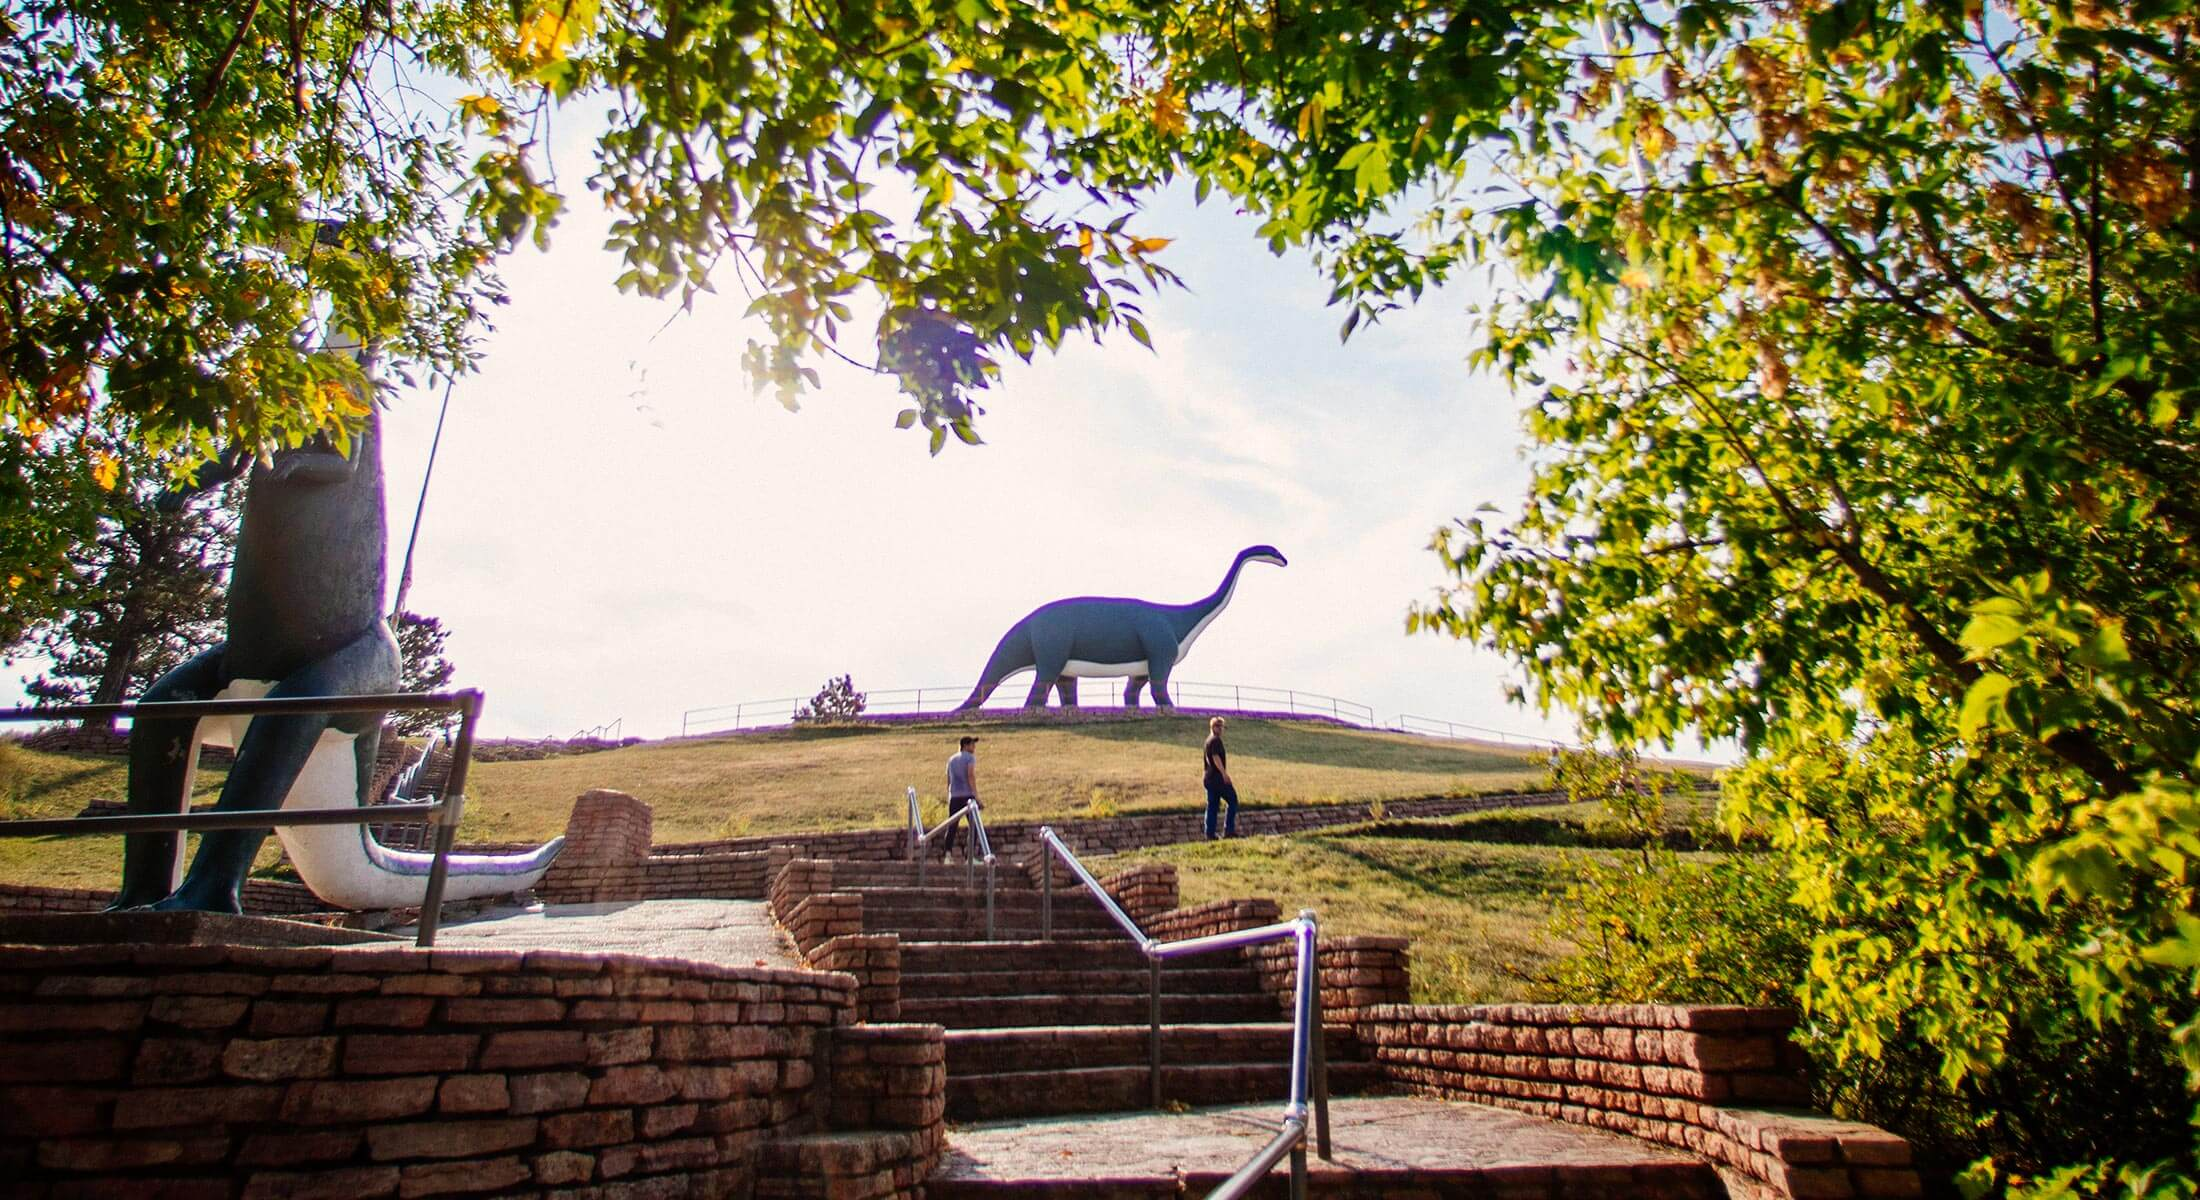 Entrance to Dinosaur Park in Rapid City